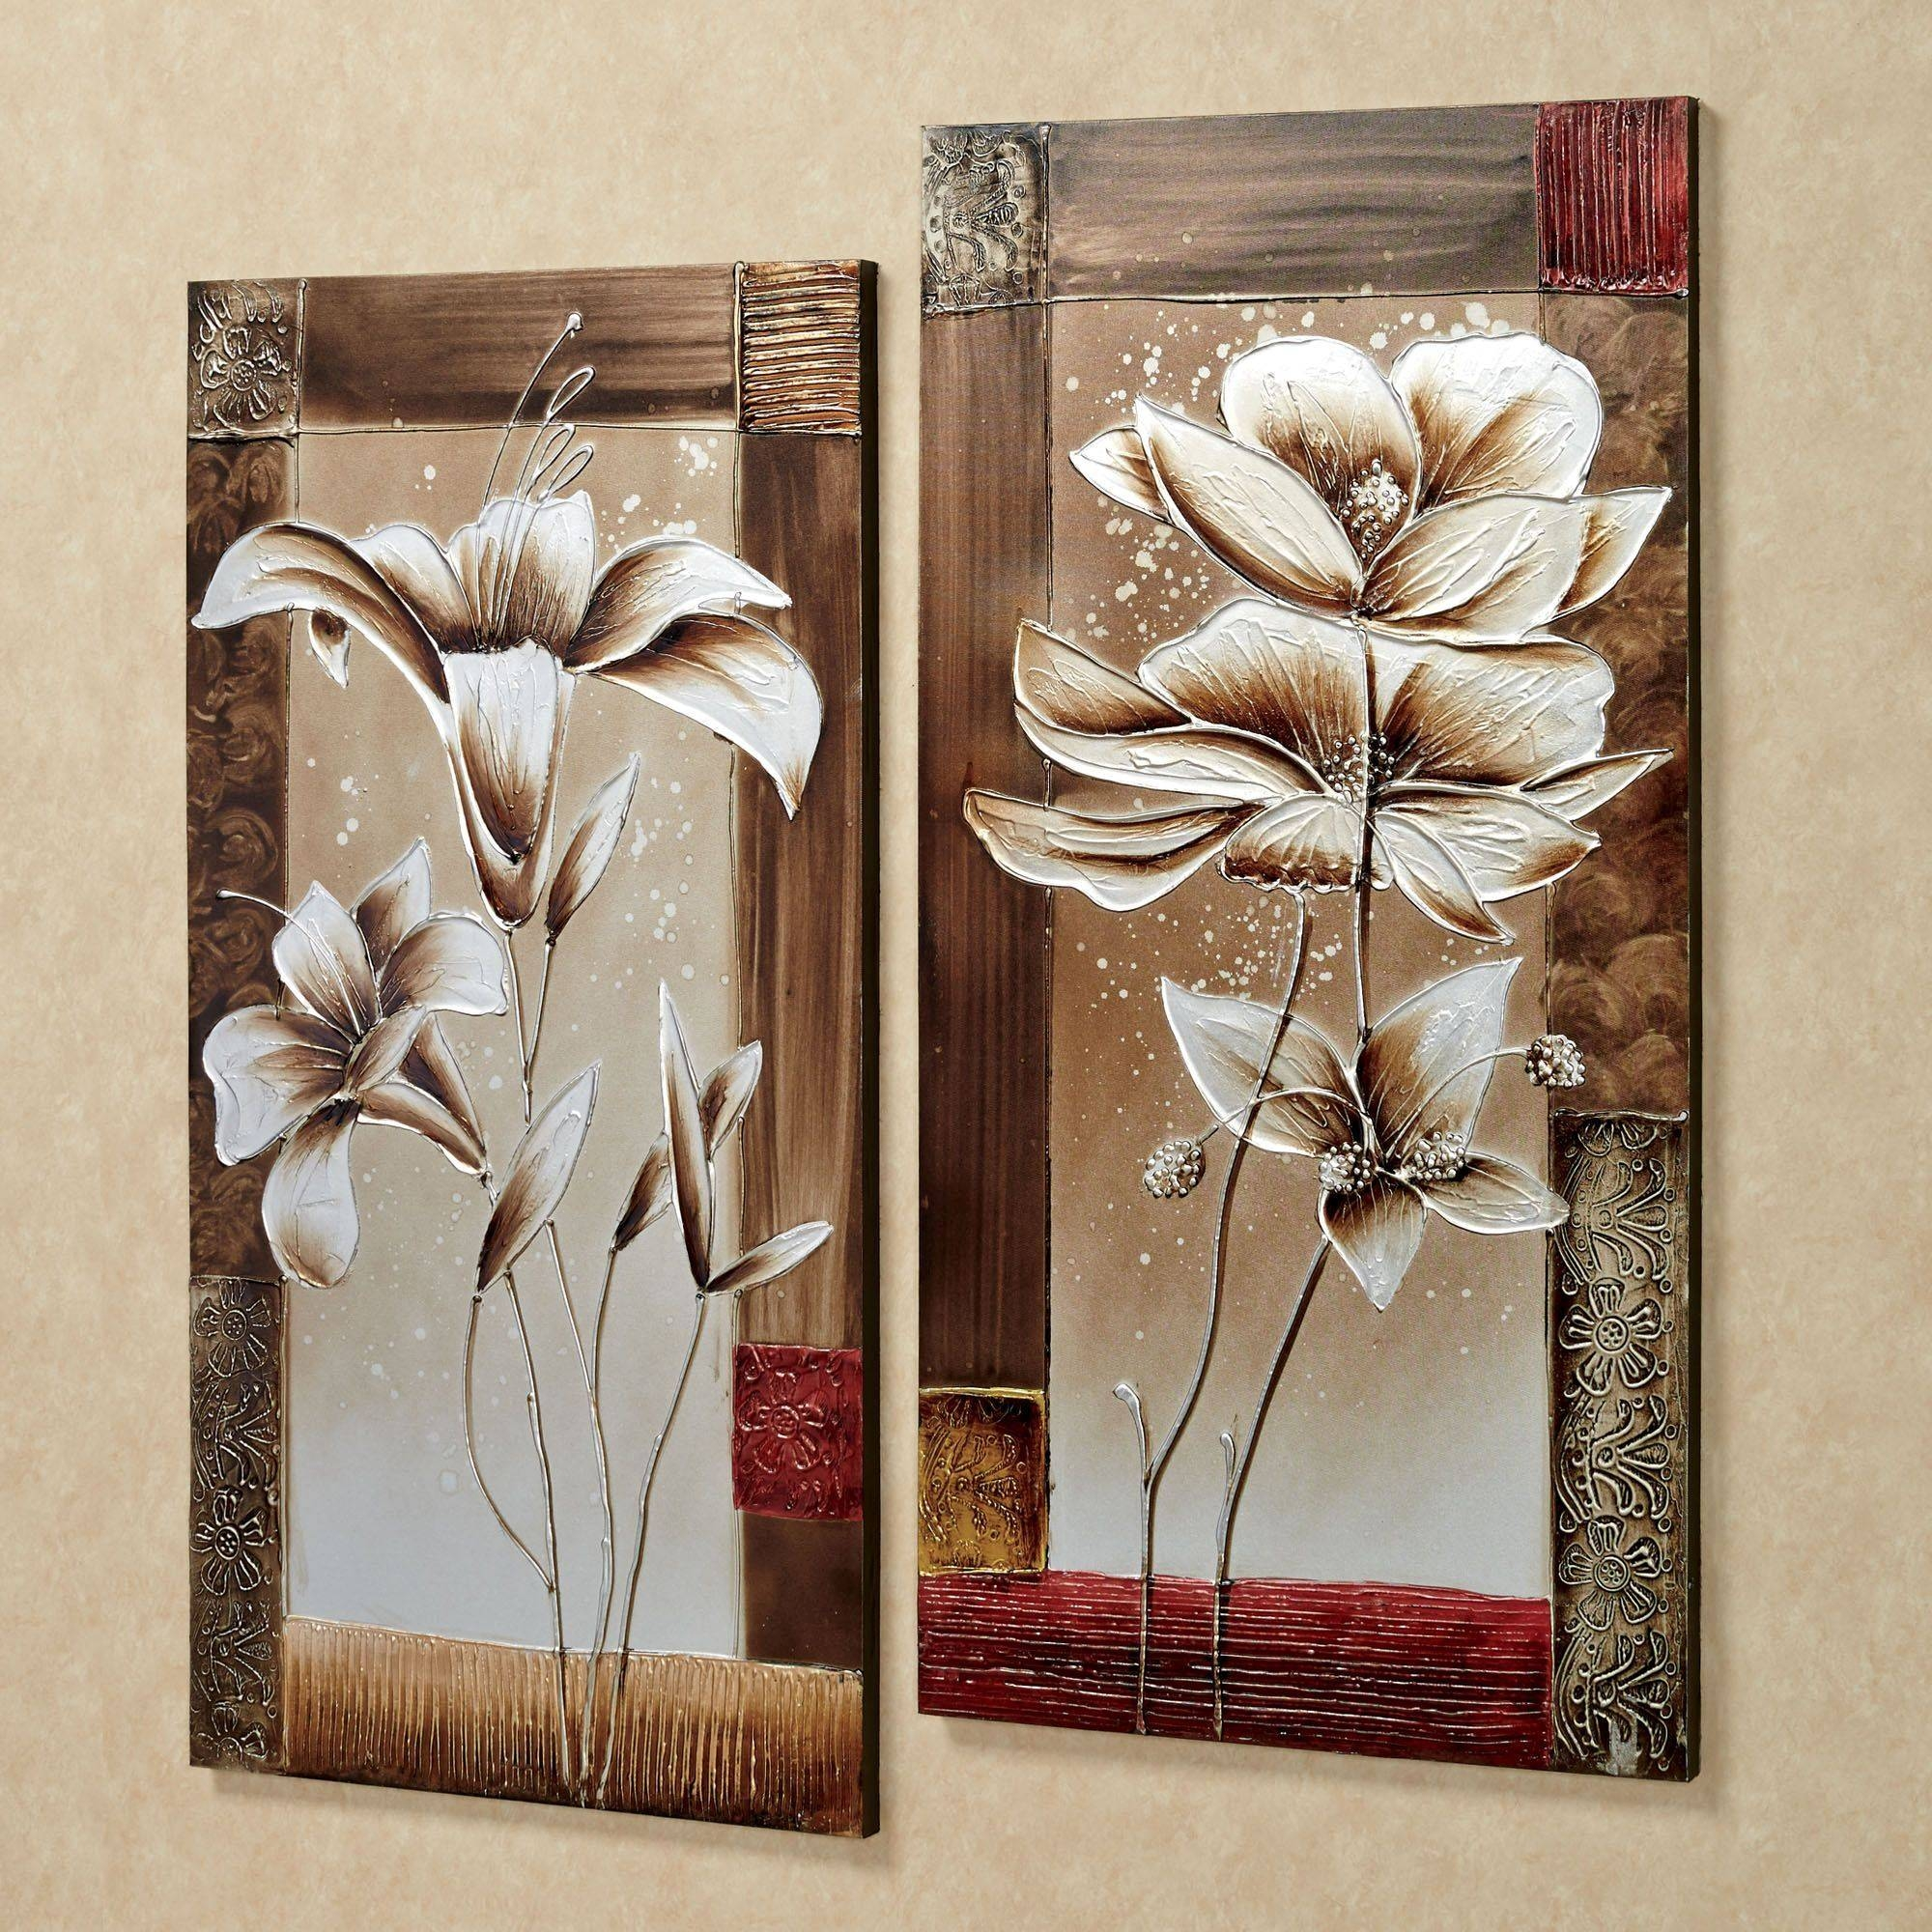 Decor: Petals Of Spring Floral Canvas Wall Art Set Intended For Best And Newest Canvas Wall Art 3 Piece Sets (View 12 of 20)